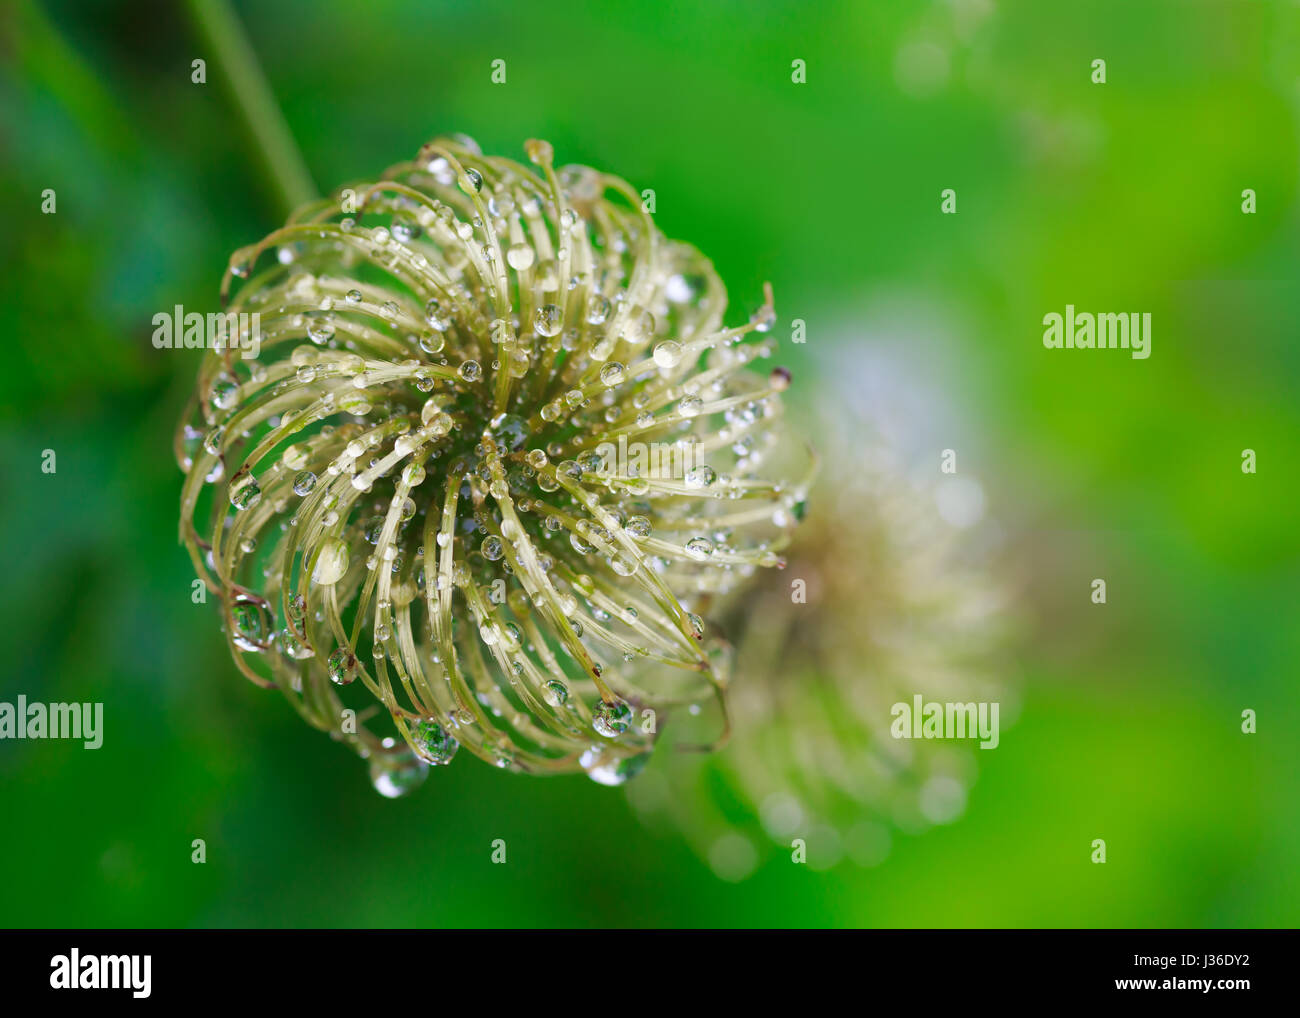 Clematis seed heads covered with water. - Stock Image